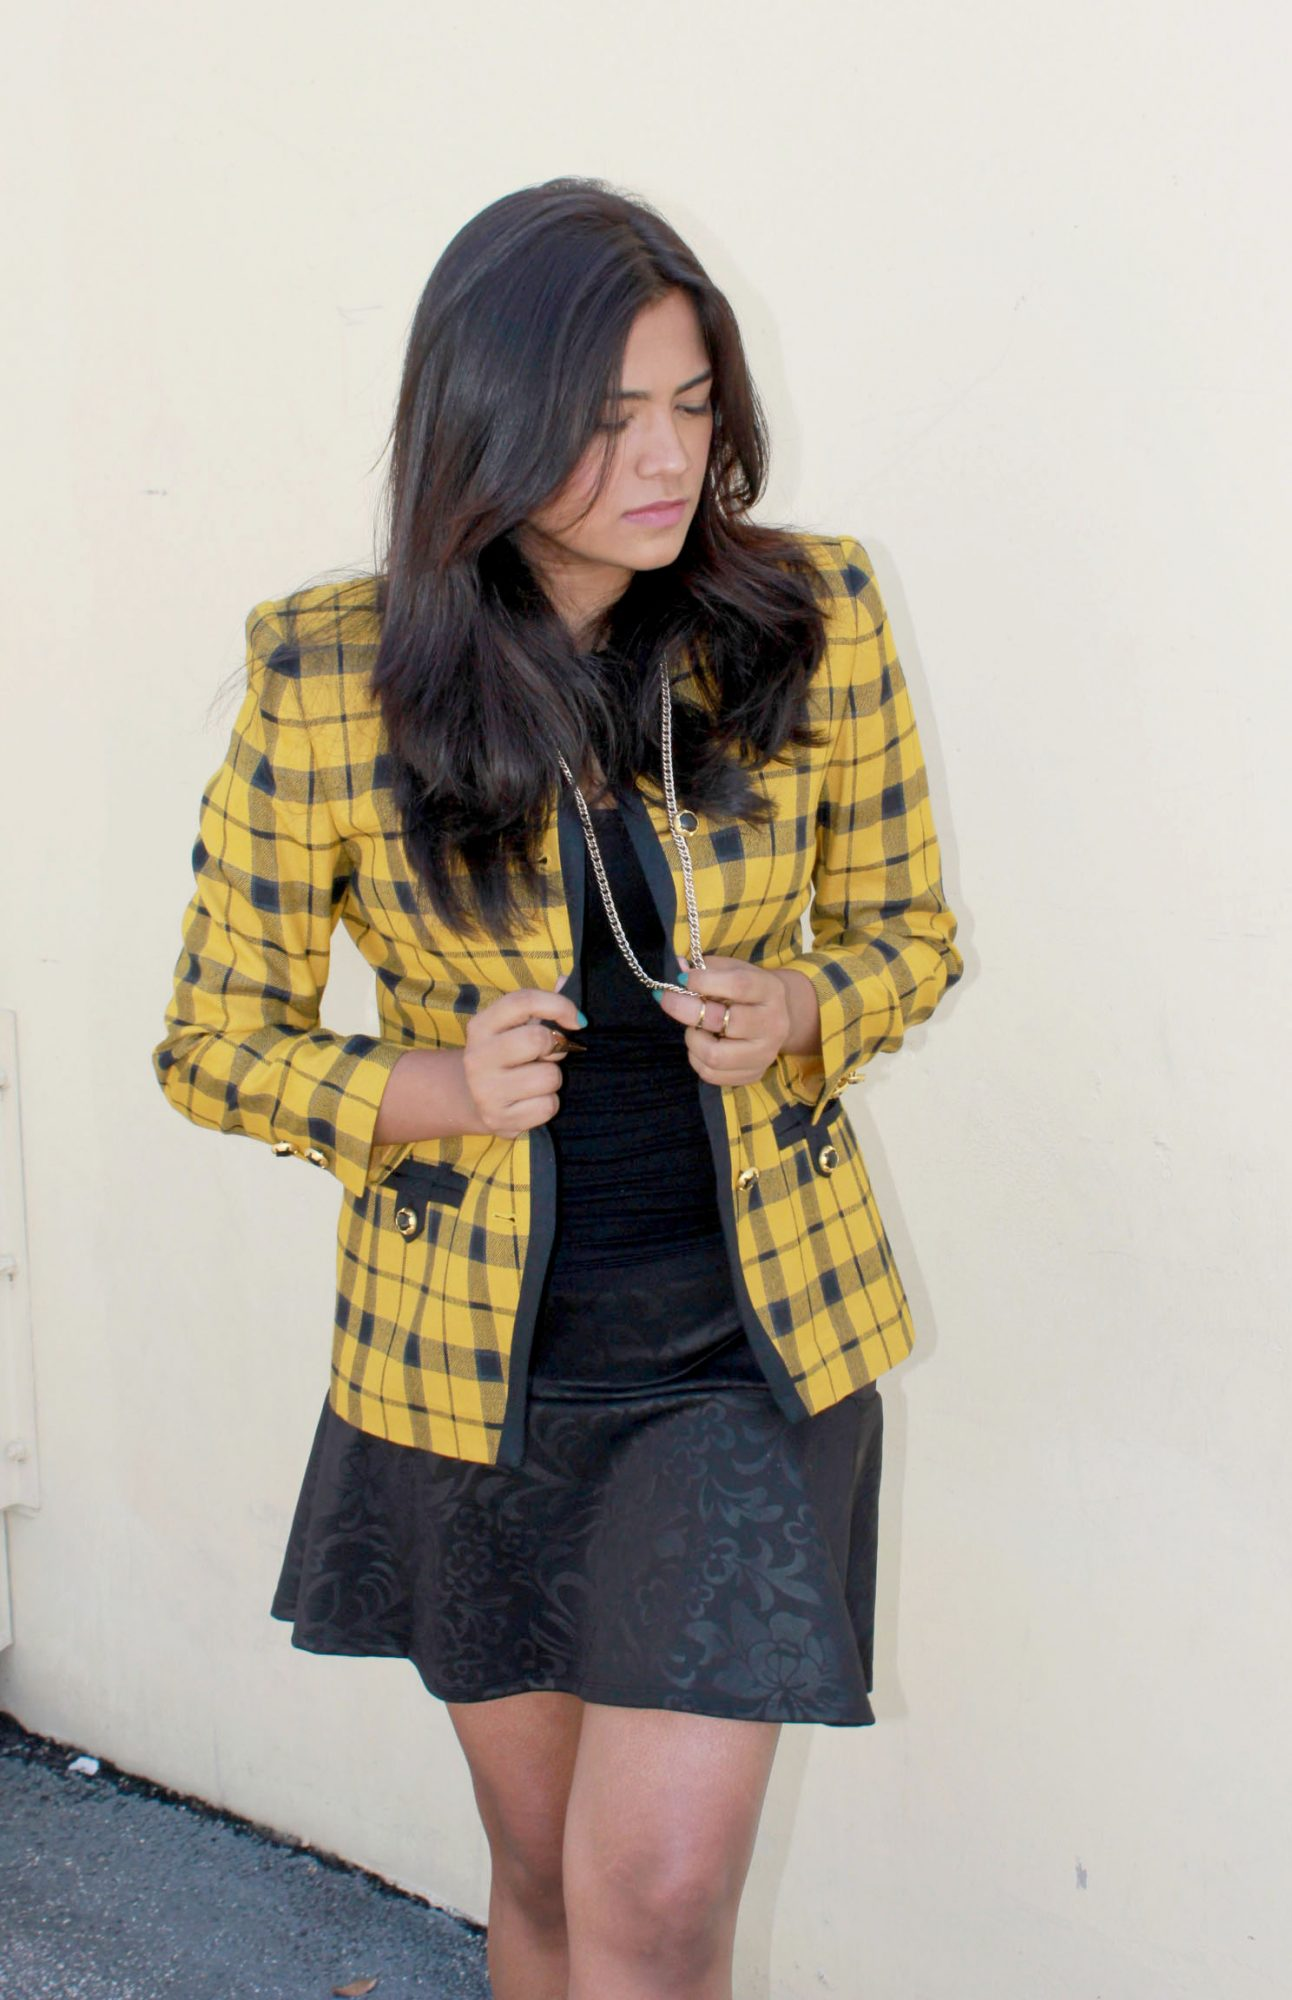 Clueless Cher Yellow Plaid Jacket